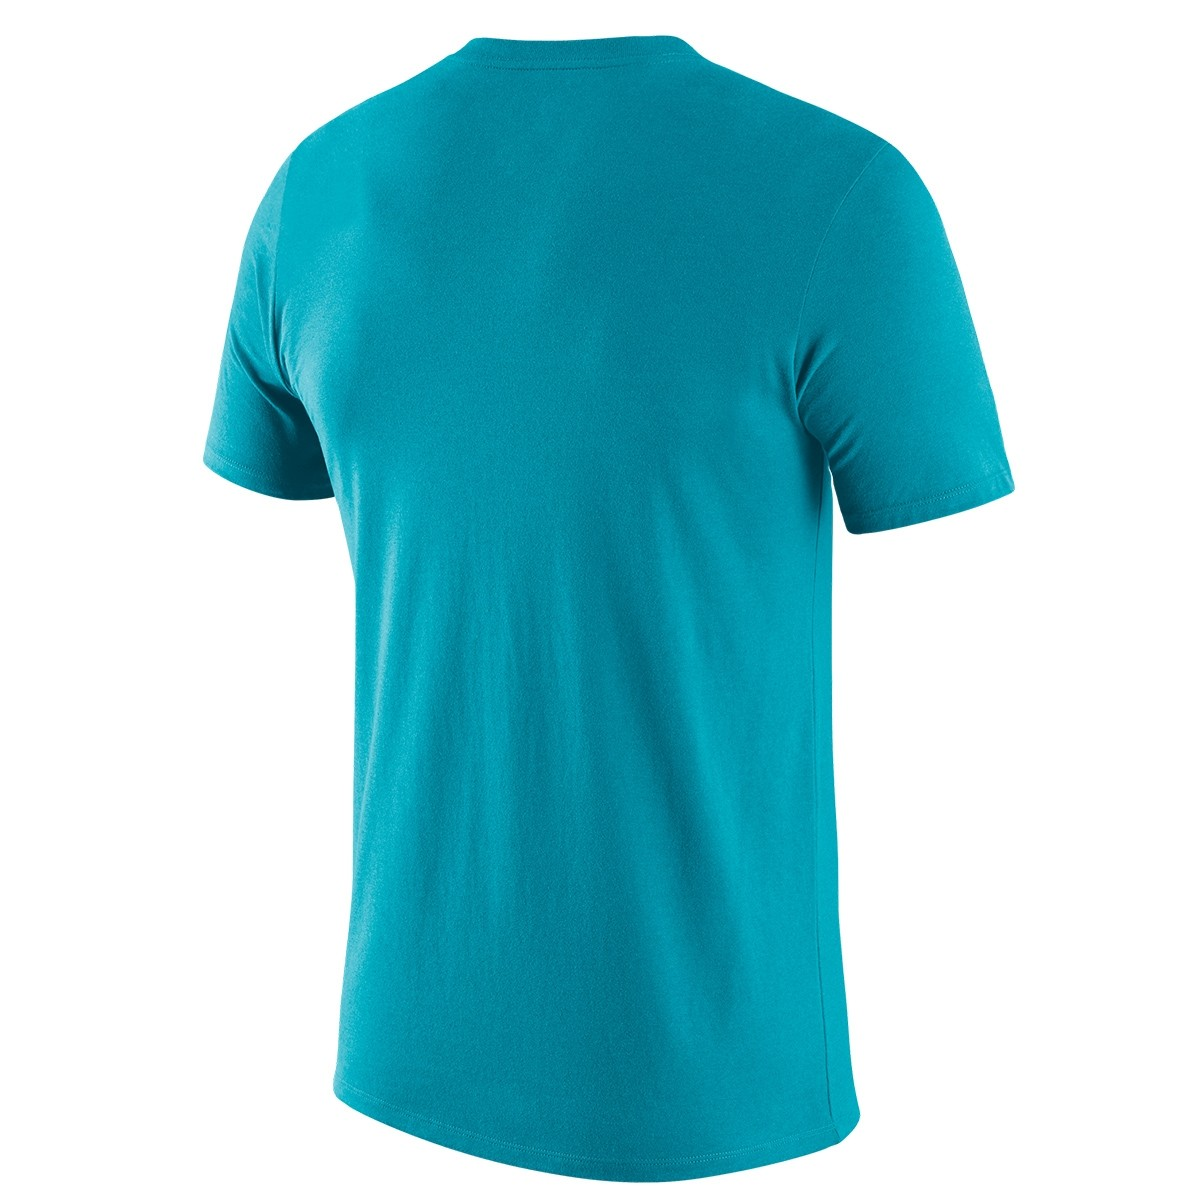 Nike Dri-FIT Tee 'Hornets'-AT0401-415